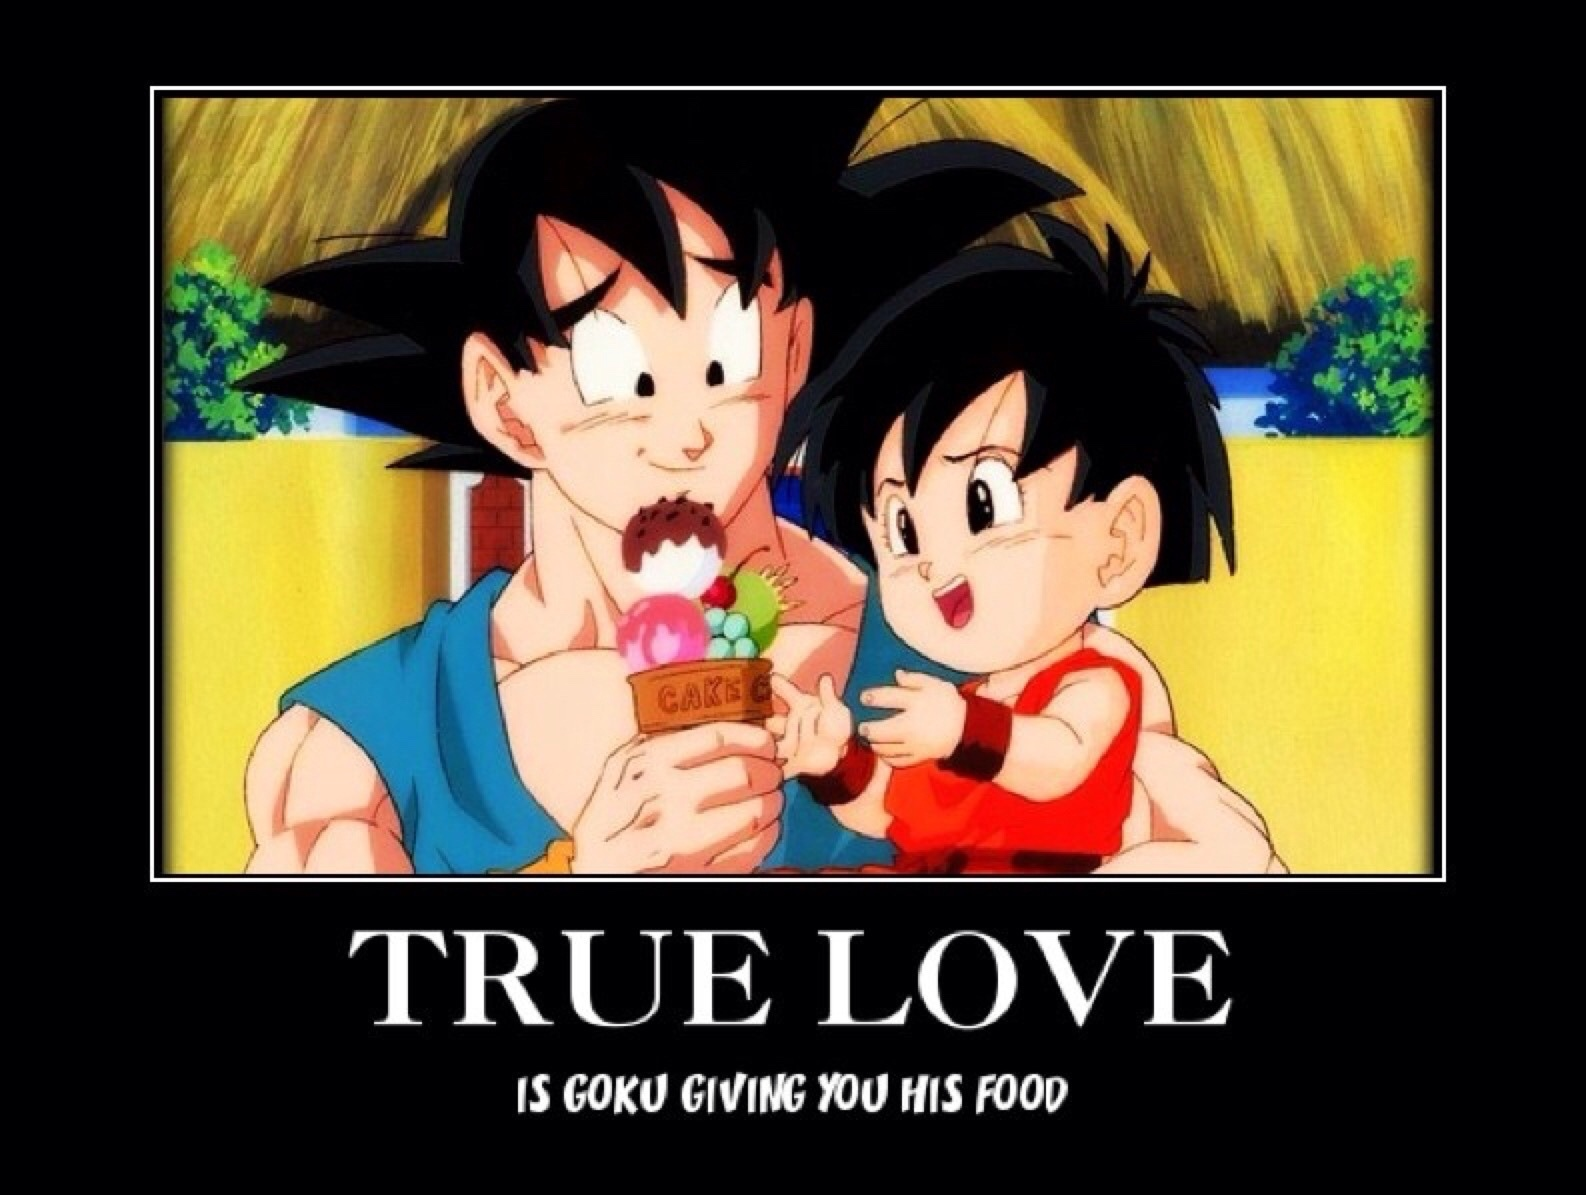 sharing food is the ultimate sign of true love